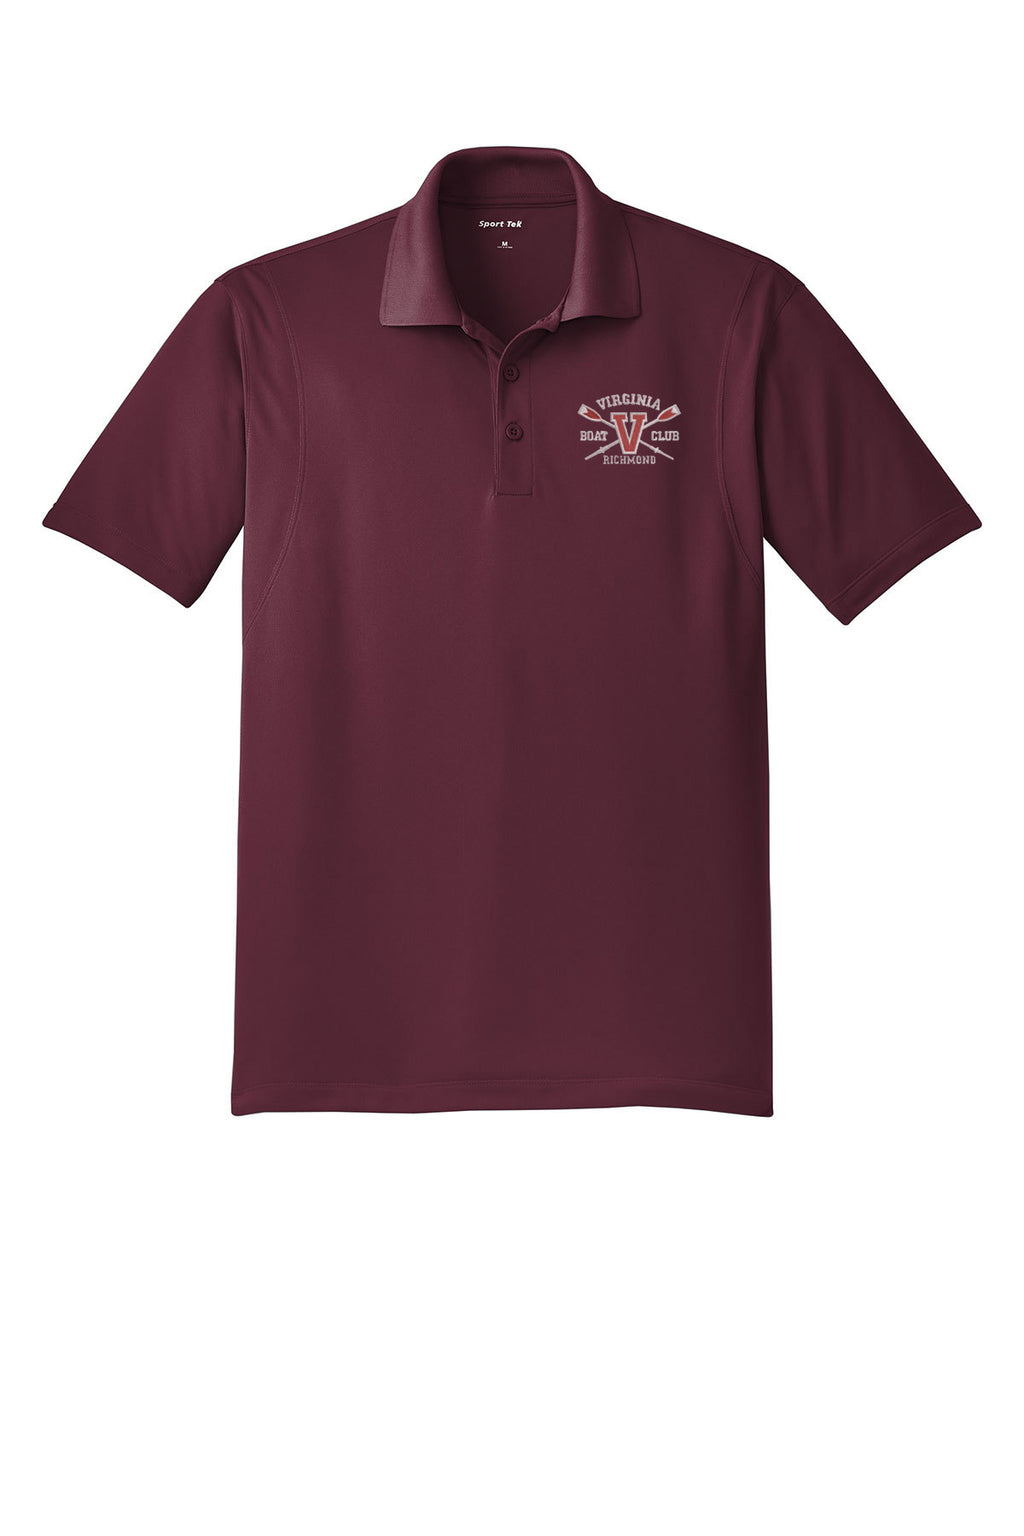 Virginia Boat Club Embroidered Performance Men's Polo